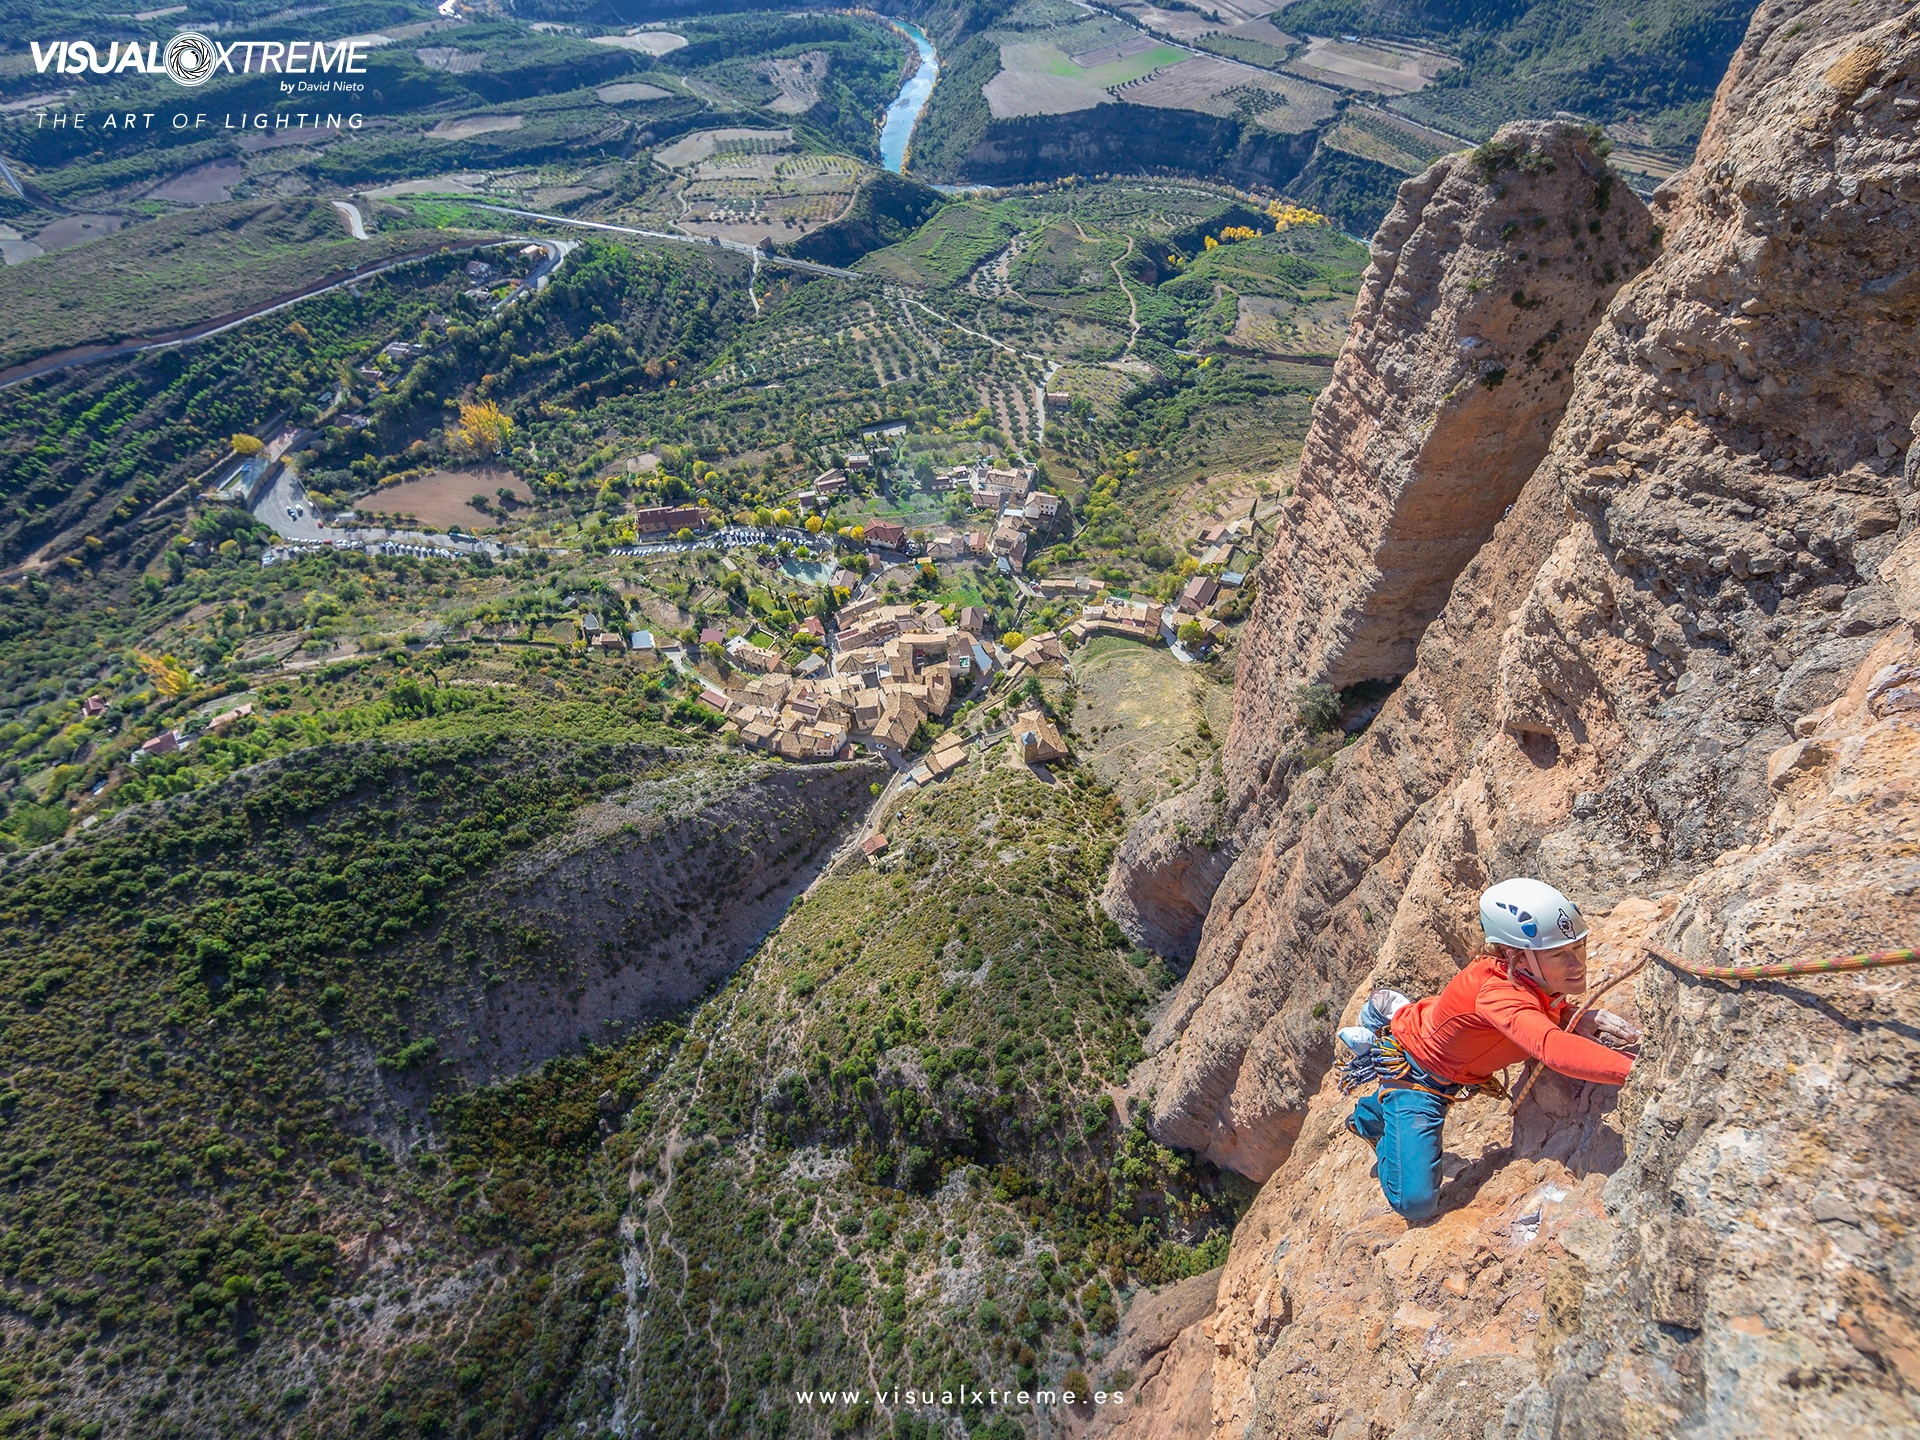 woman rock climbs on reddish rock face high above a small town